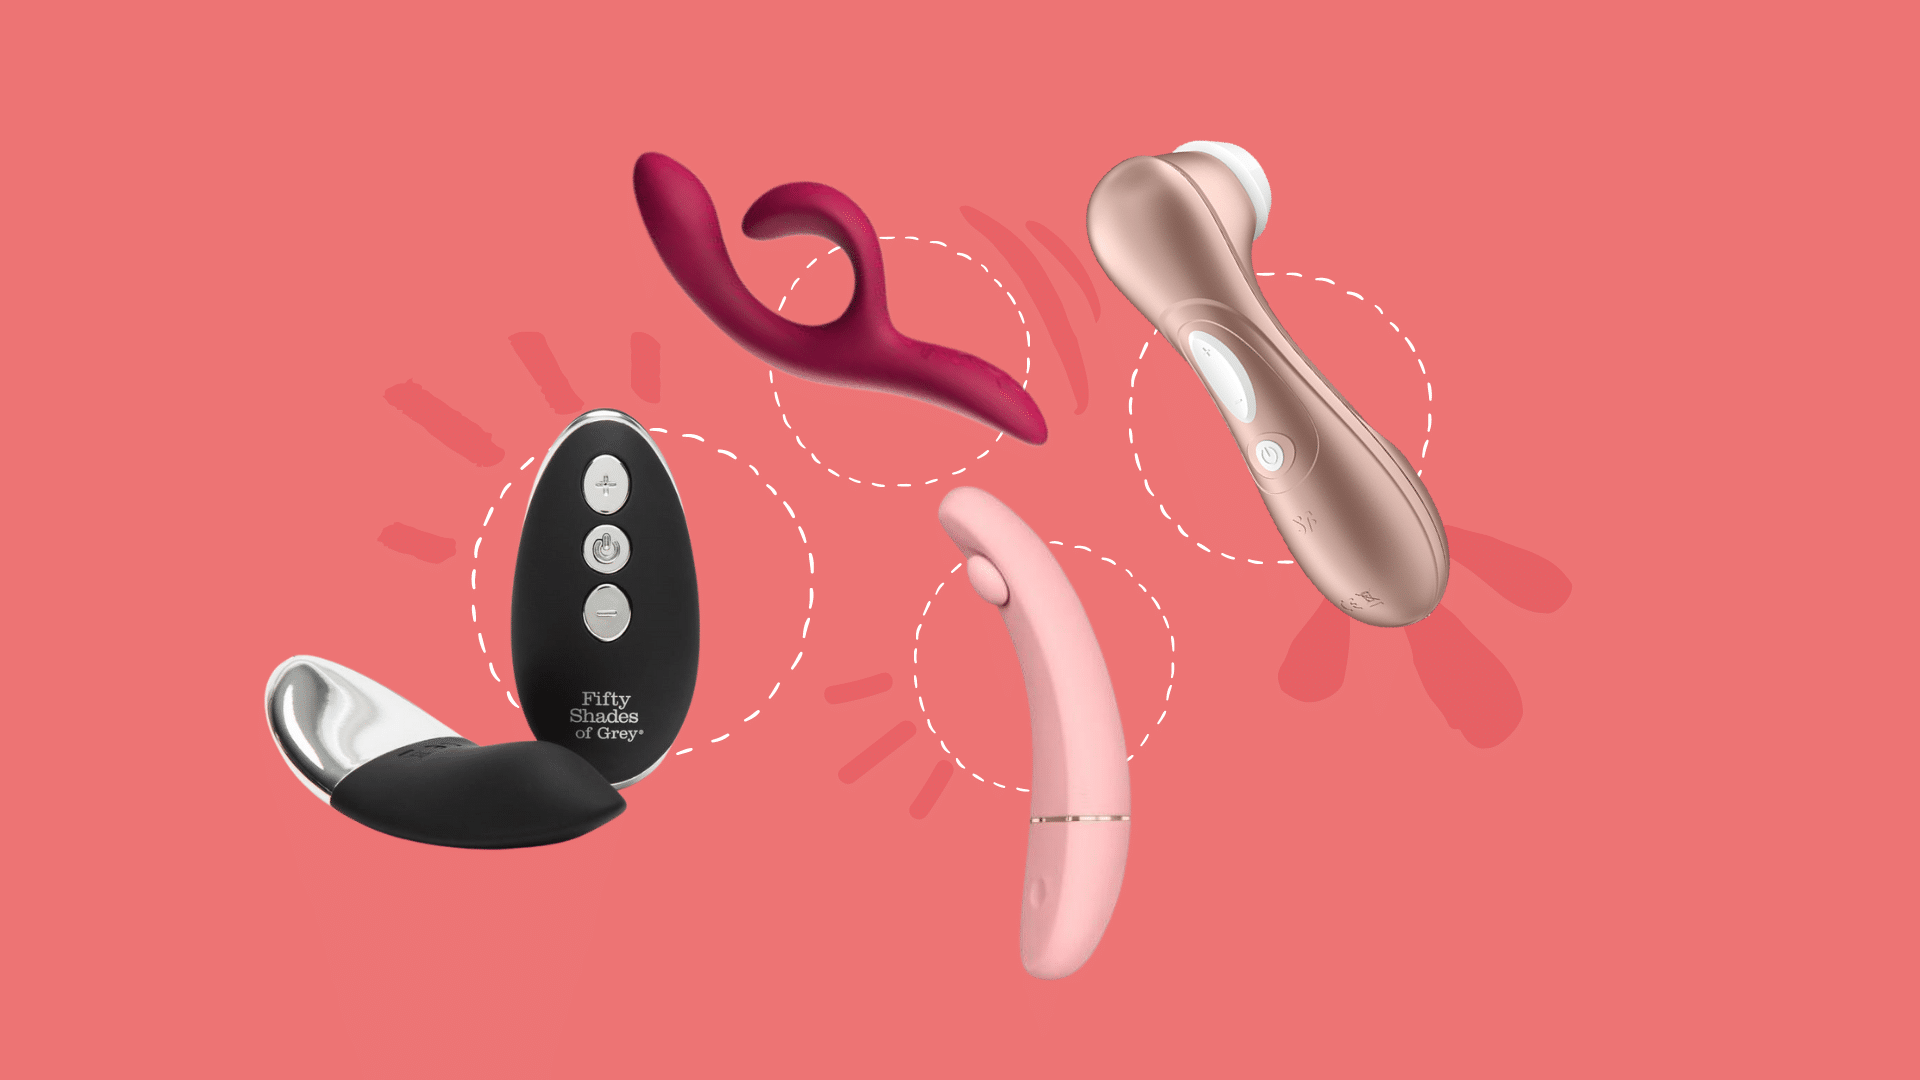 Feature images, leiser Vibrator